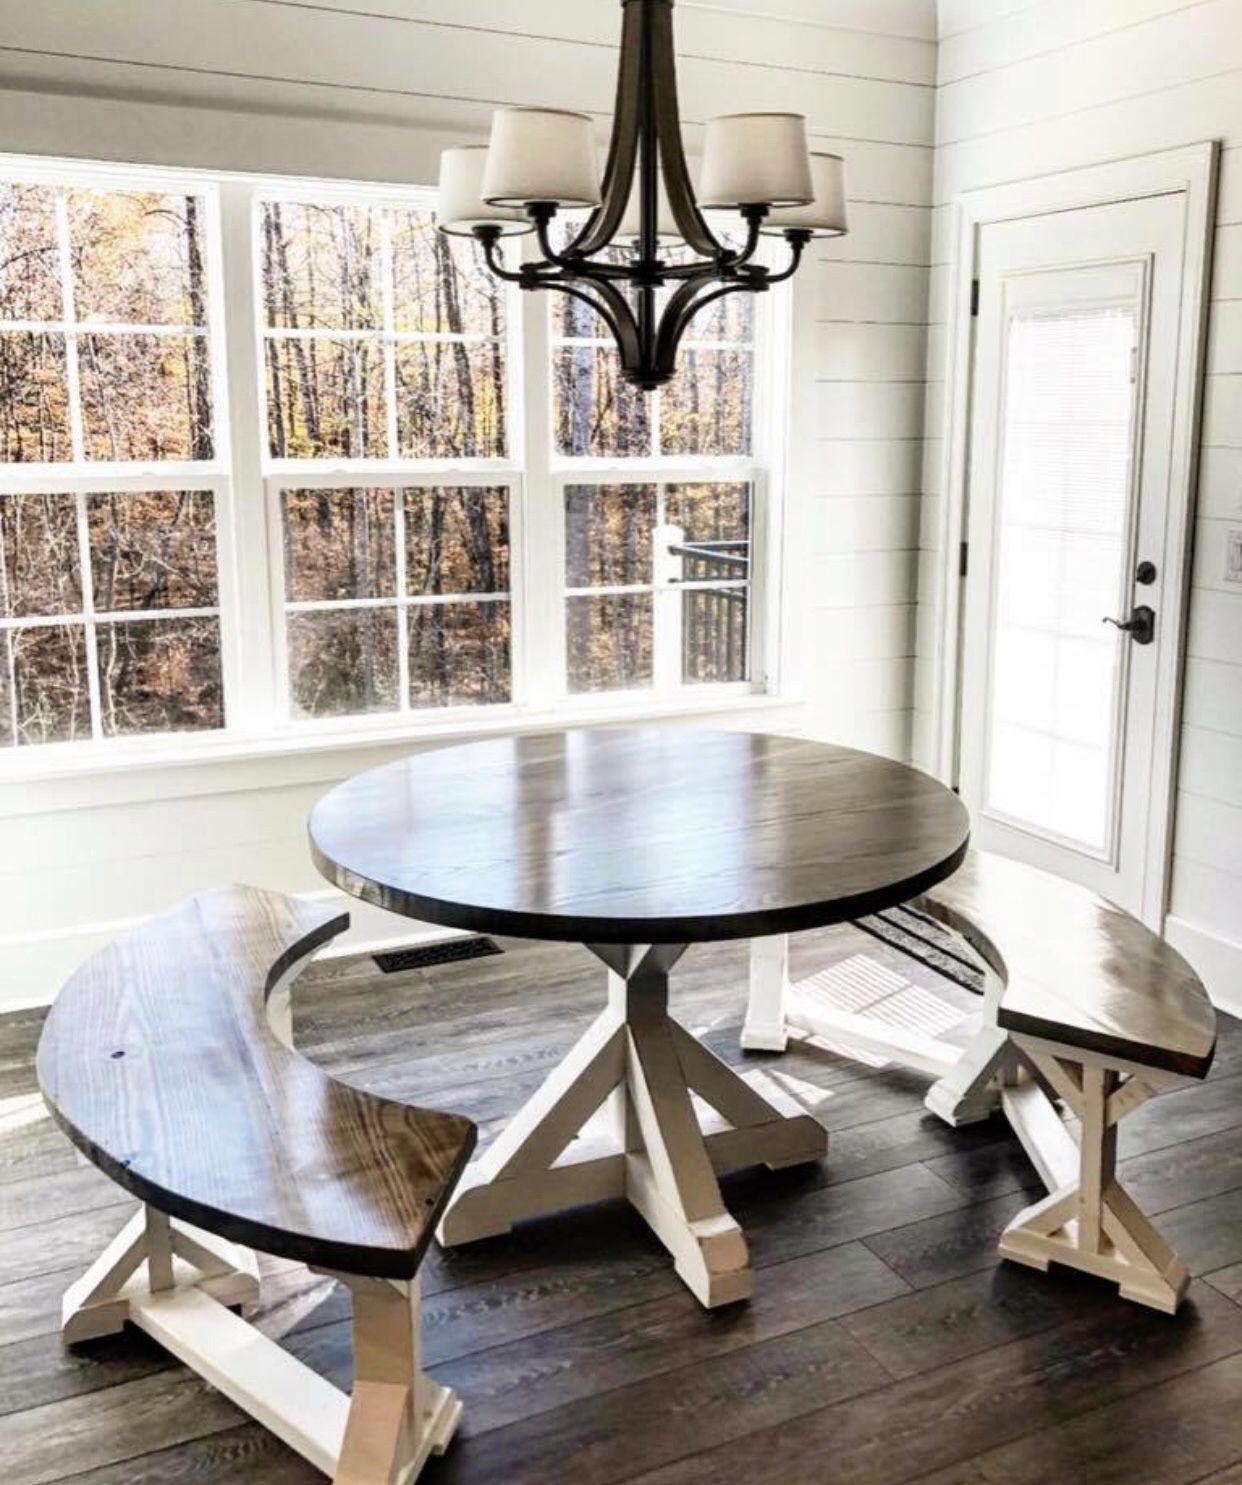 Farmhouse Circle Table Circle Dining Table Farmhouse Dining Room Dining Table With Bench